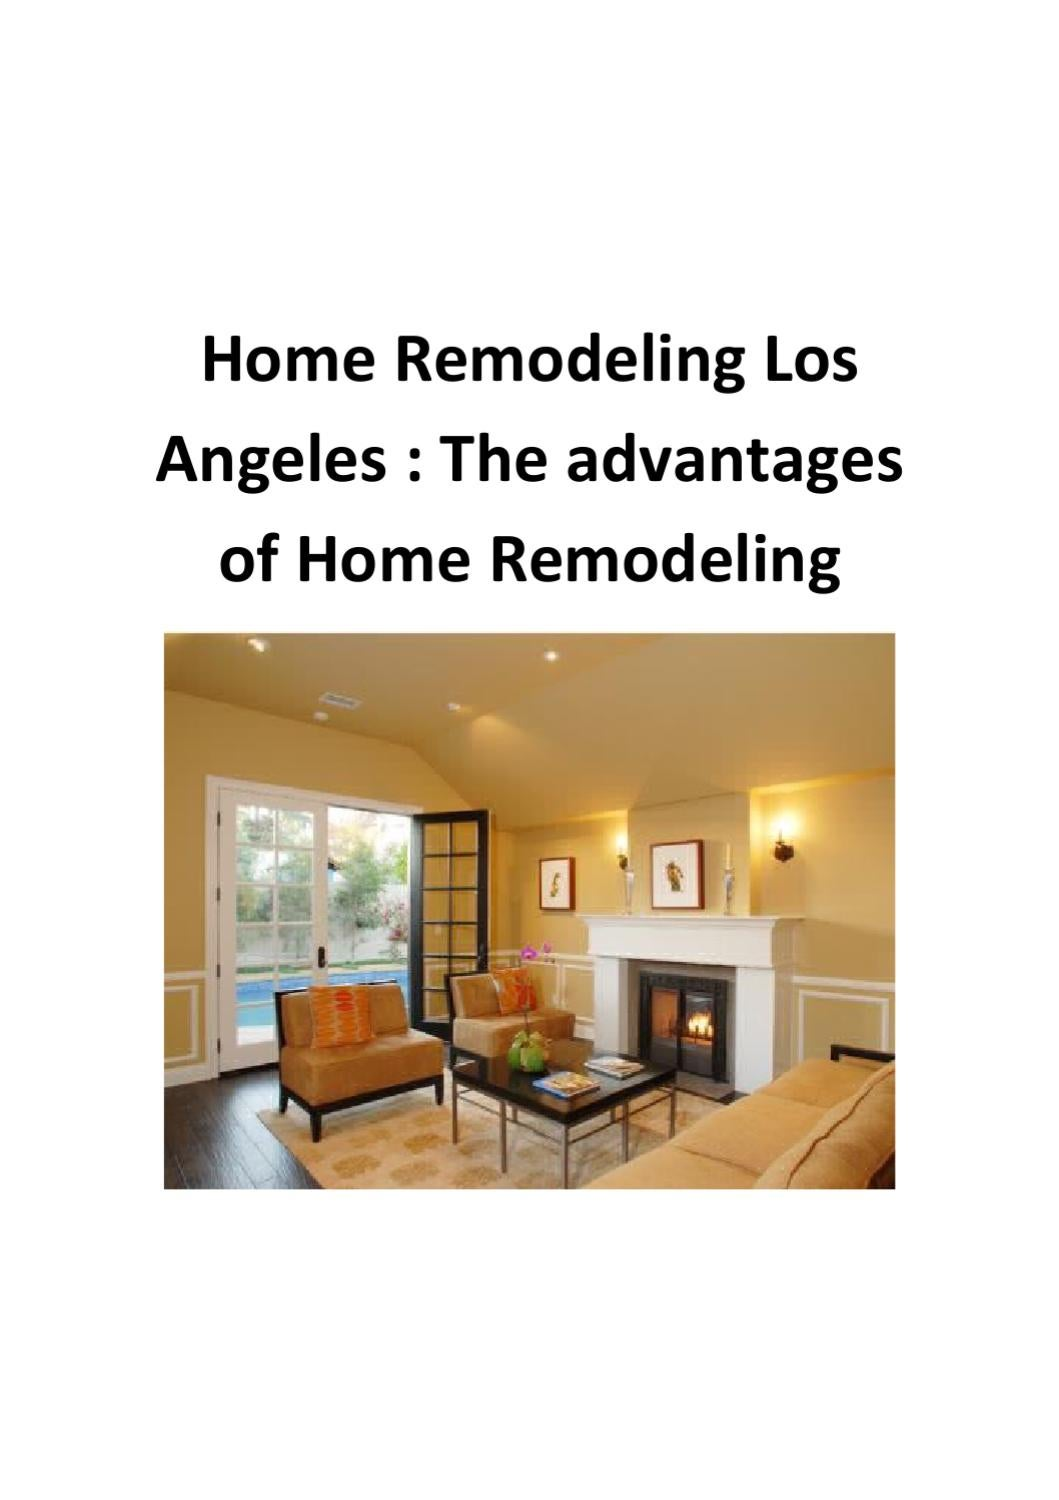 home remodeling los angeles the advantages of home